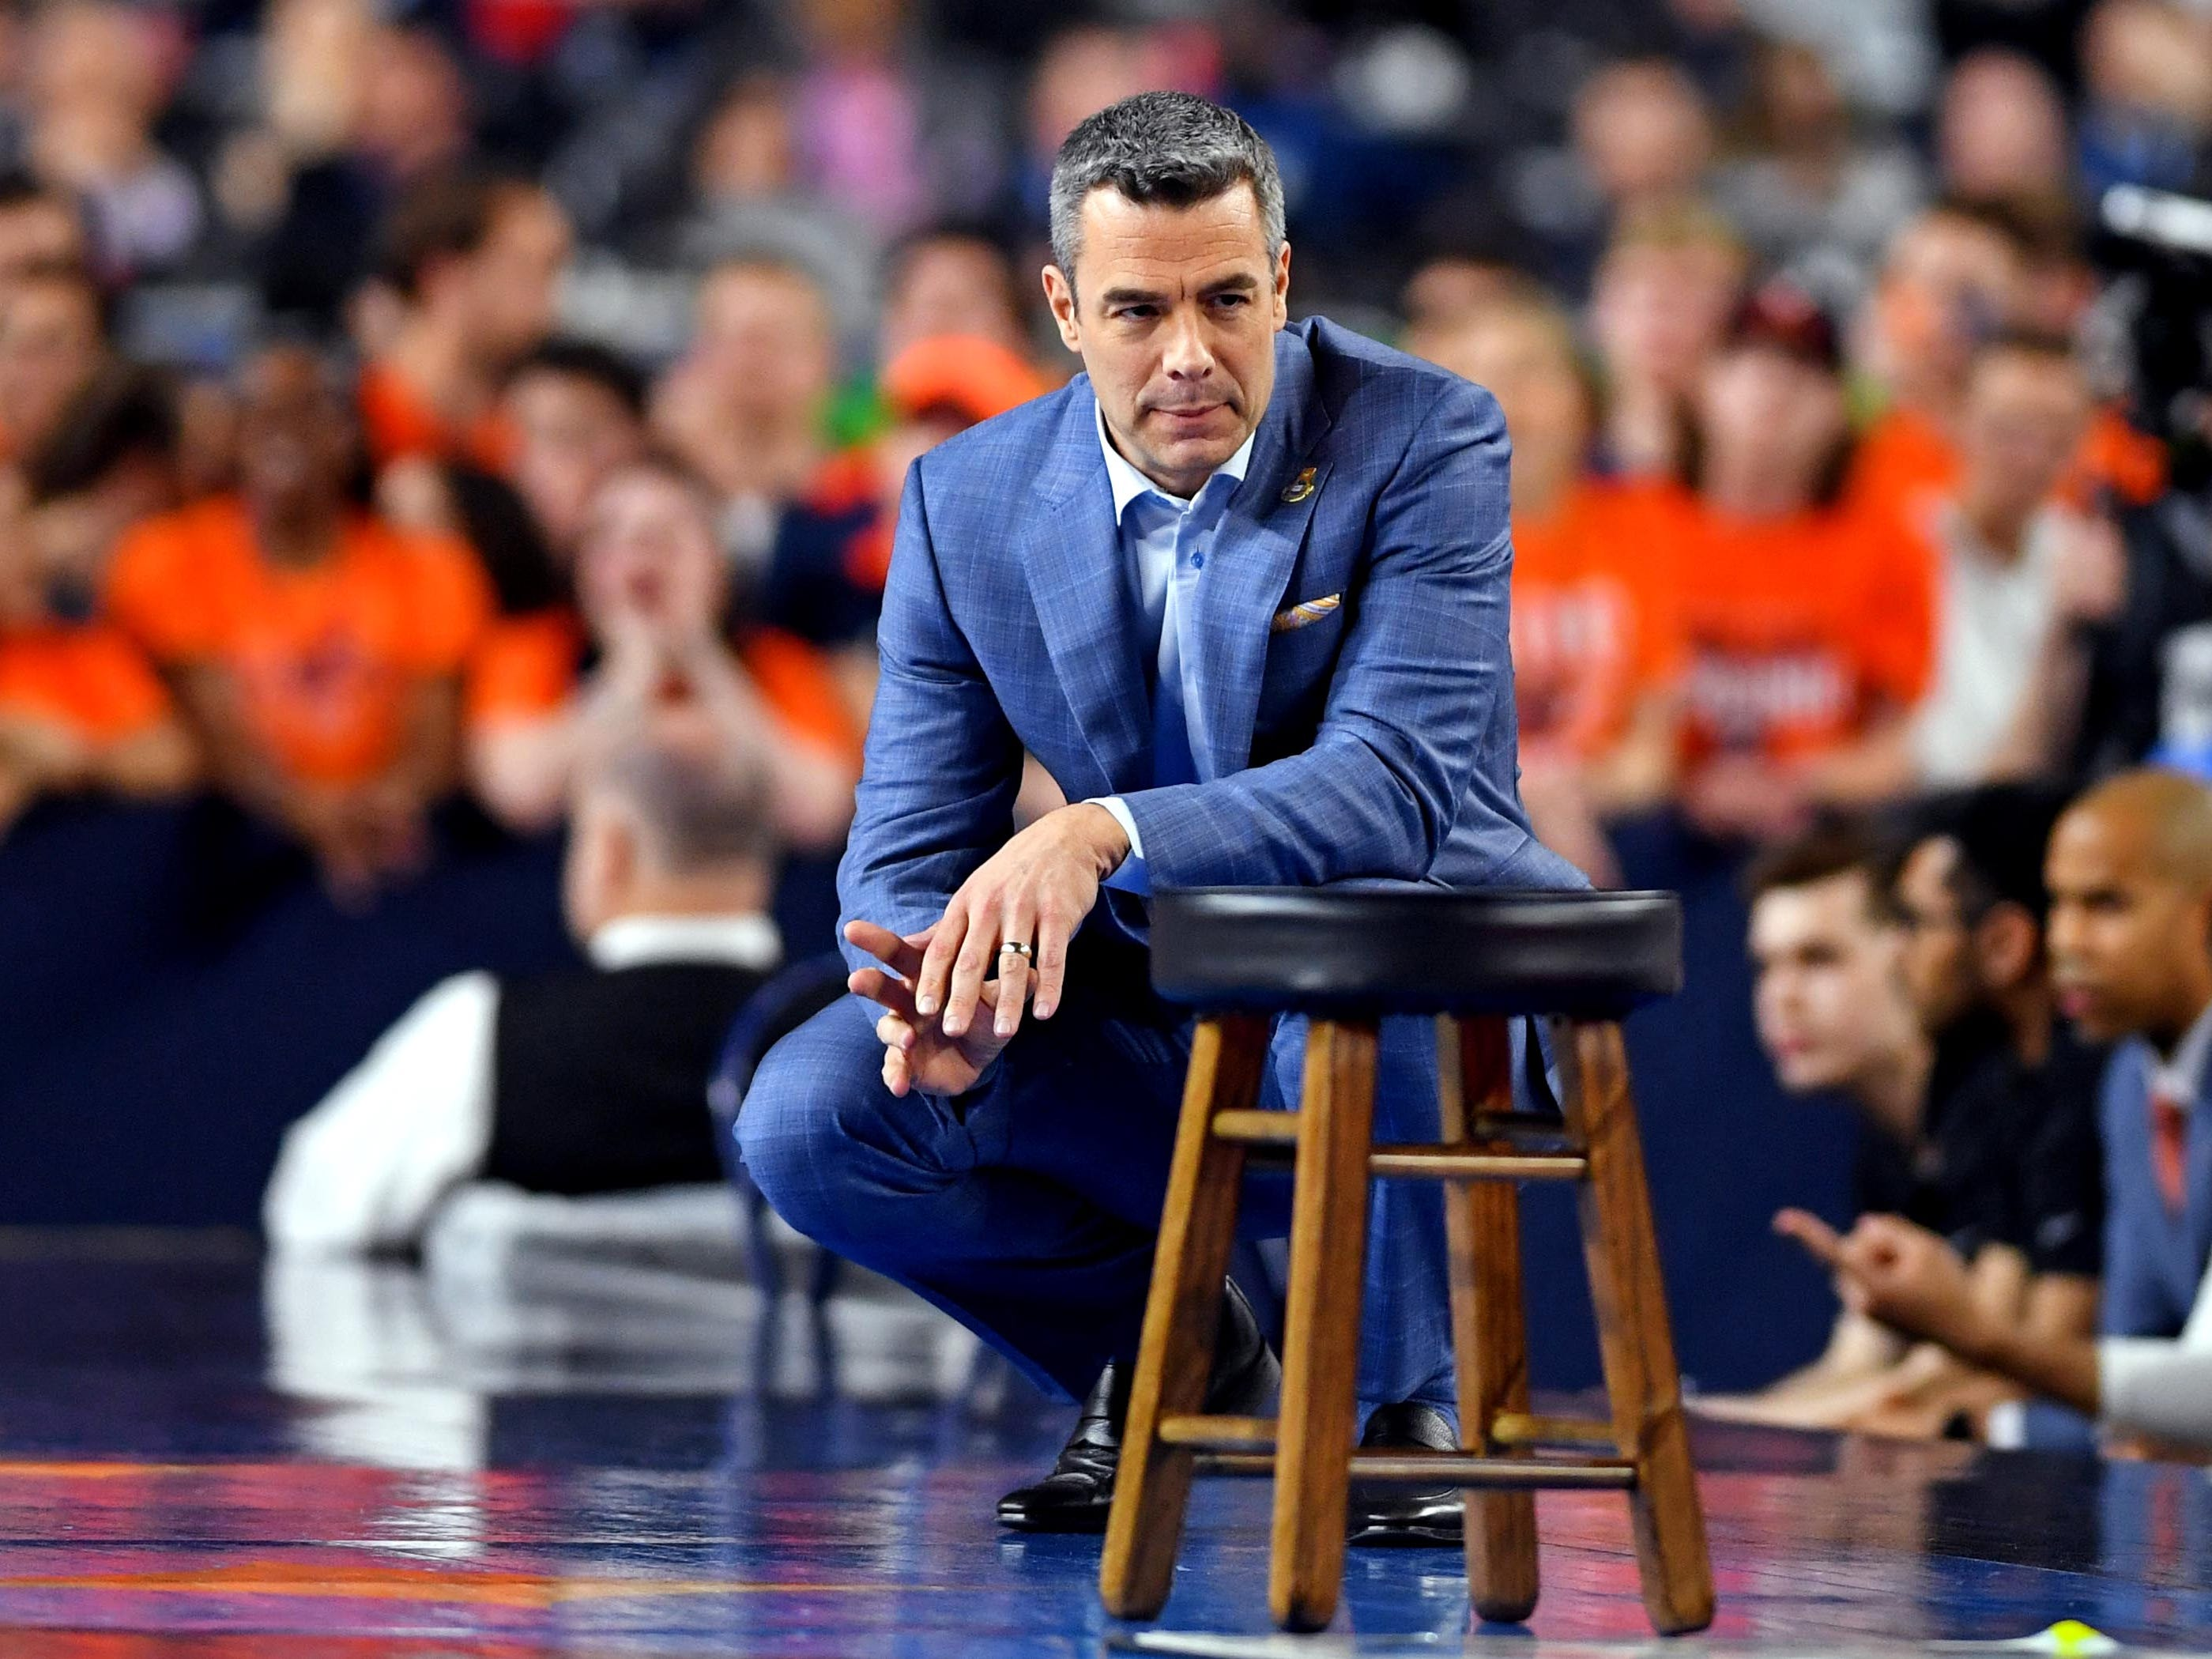 Virginia coach Tony Bennett during the first half against Texas Tech in the championship game.